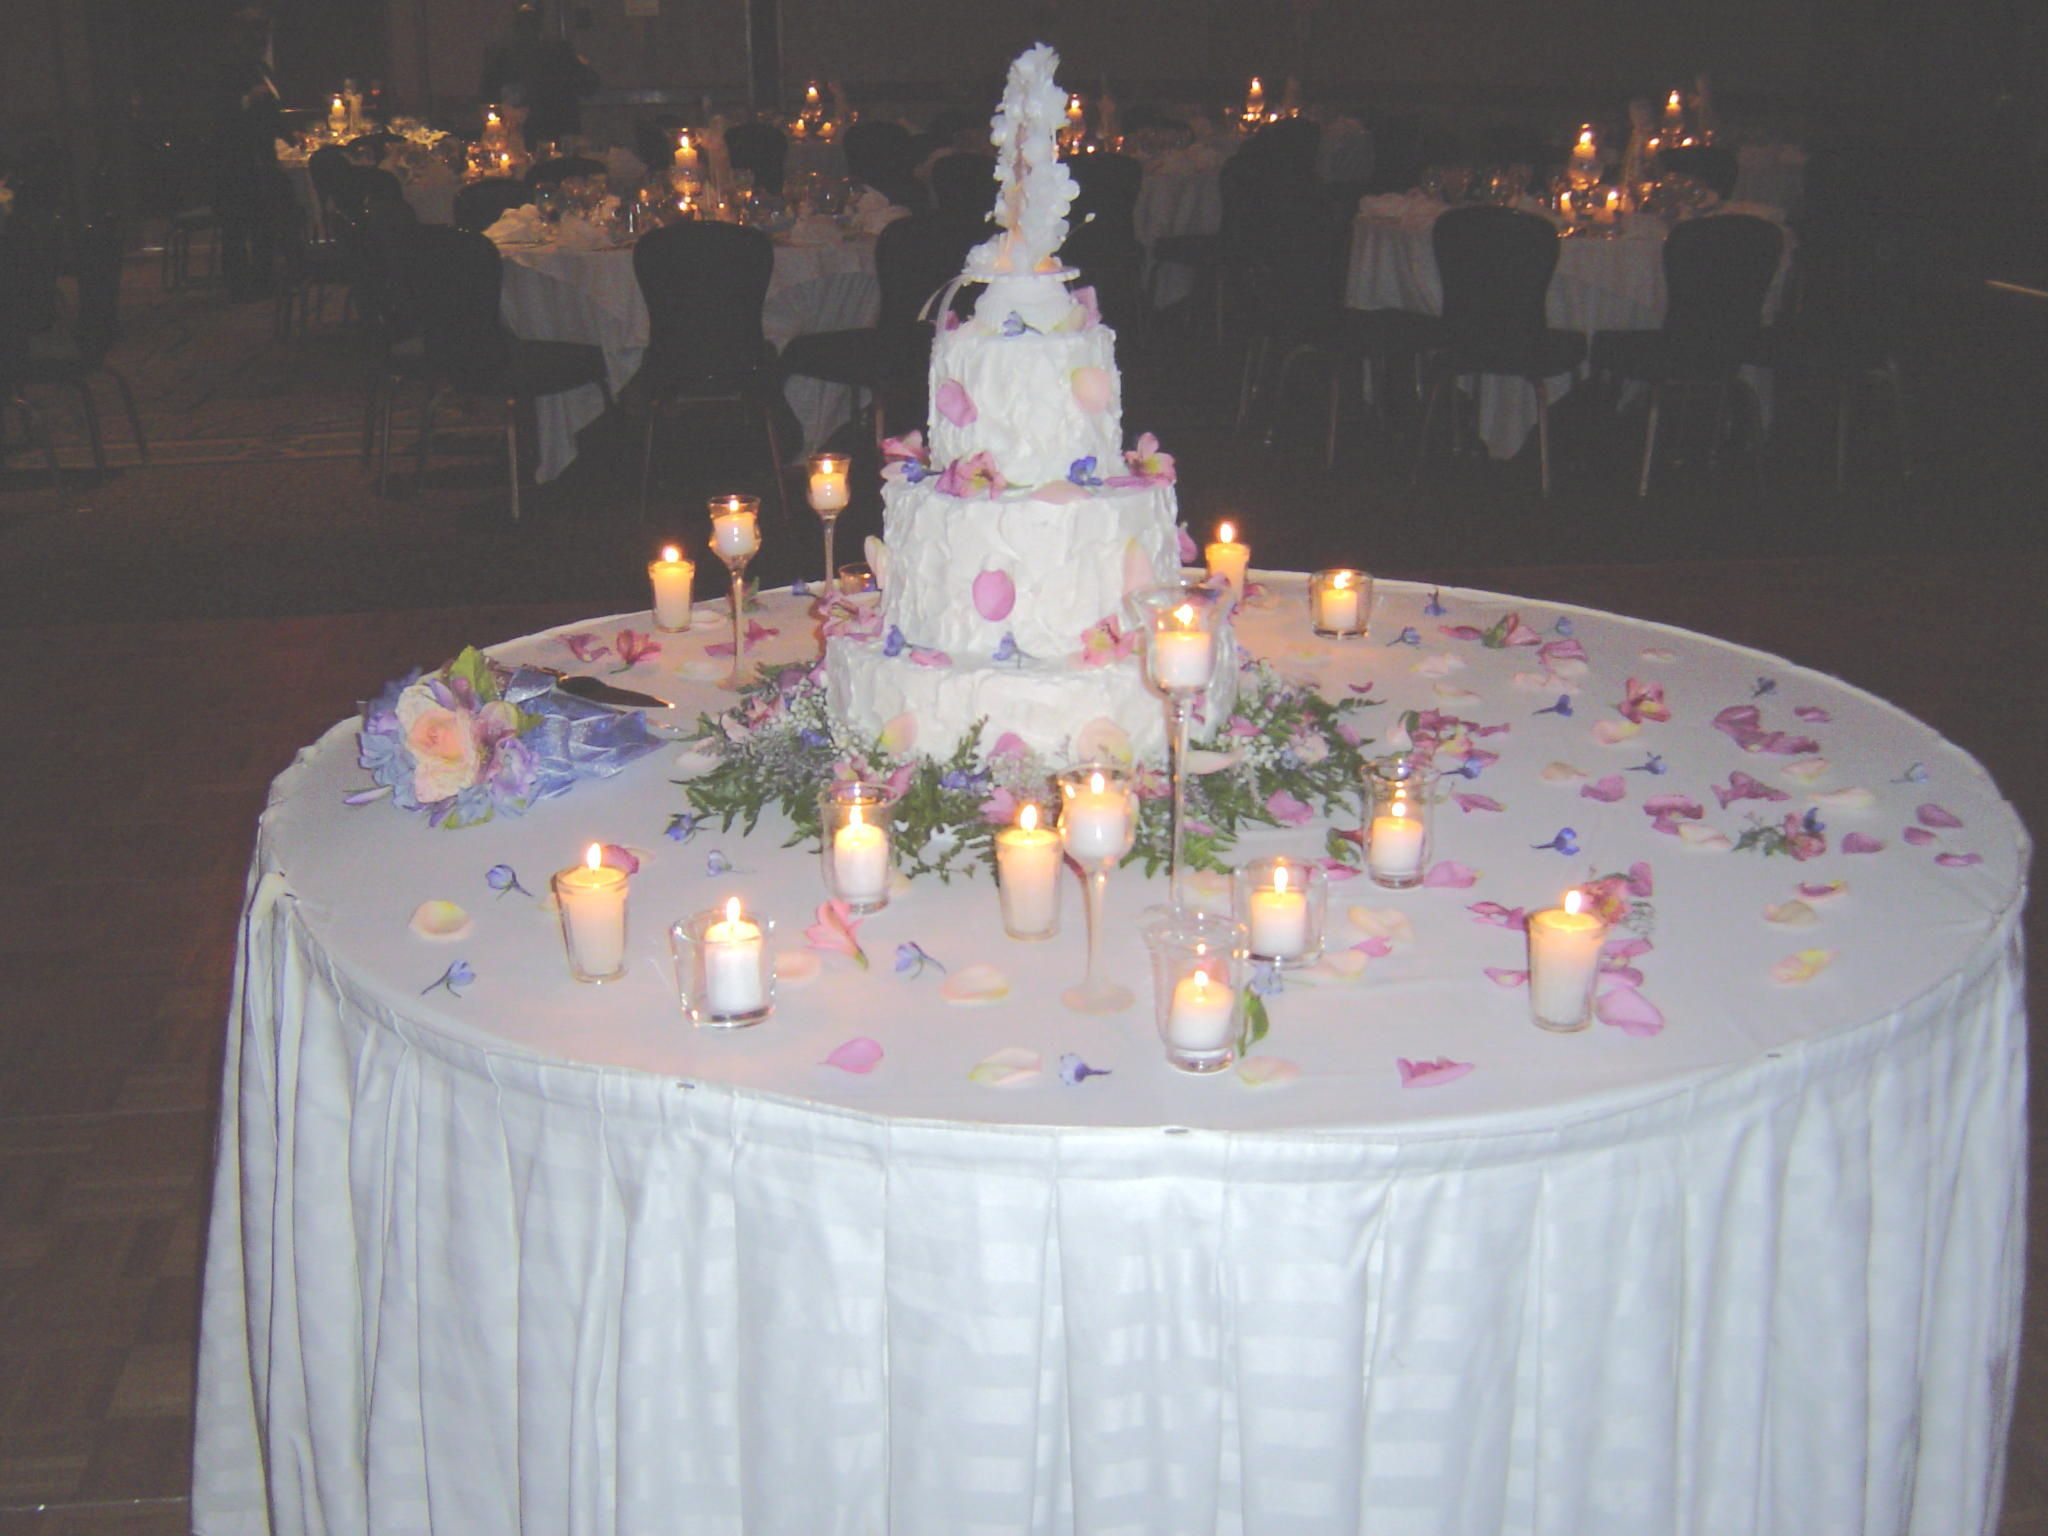 Unique table decorations for weddings cake wedding